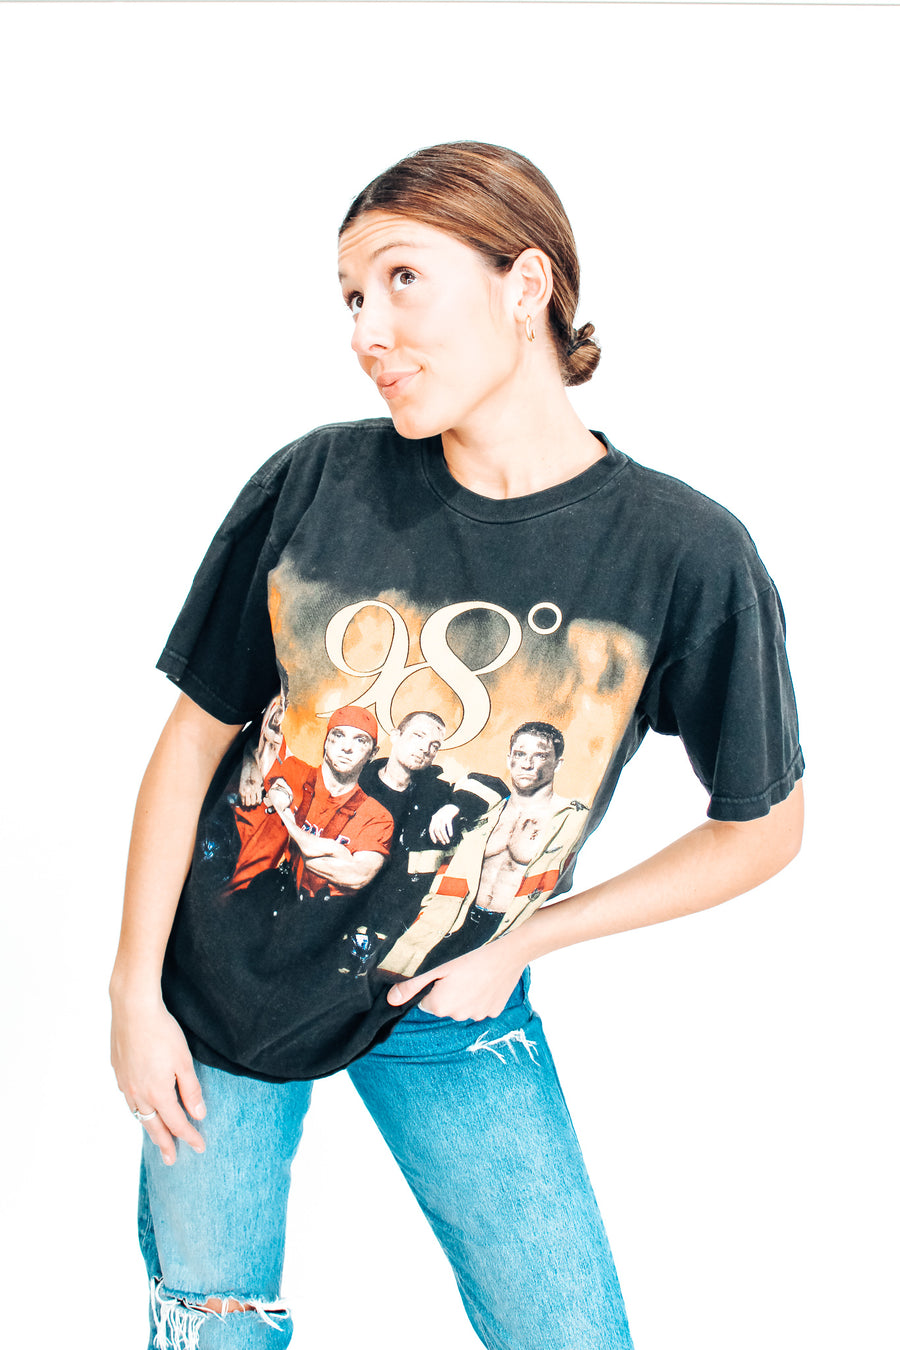 98 Degrees 1999 Tour Tee - L